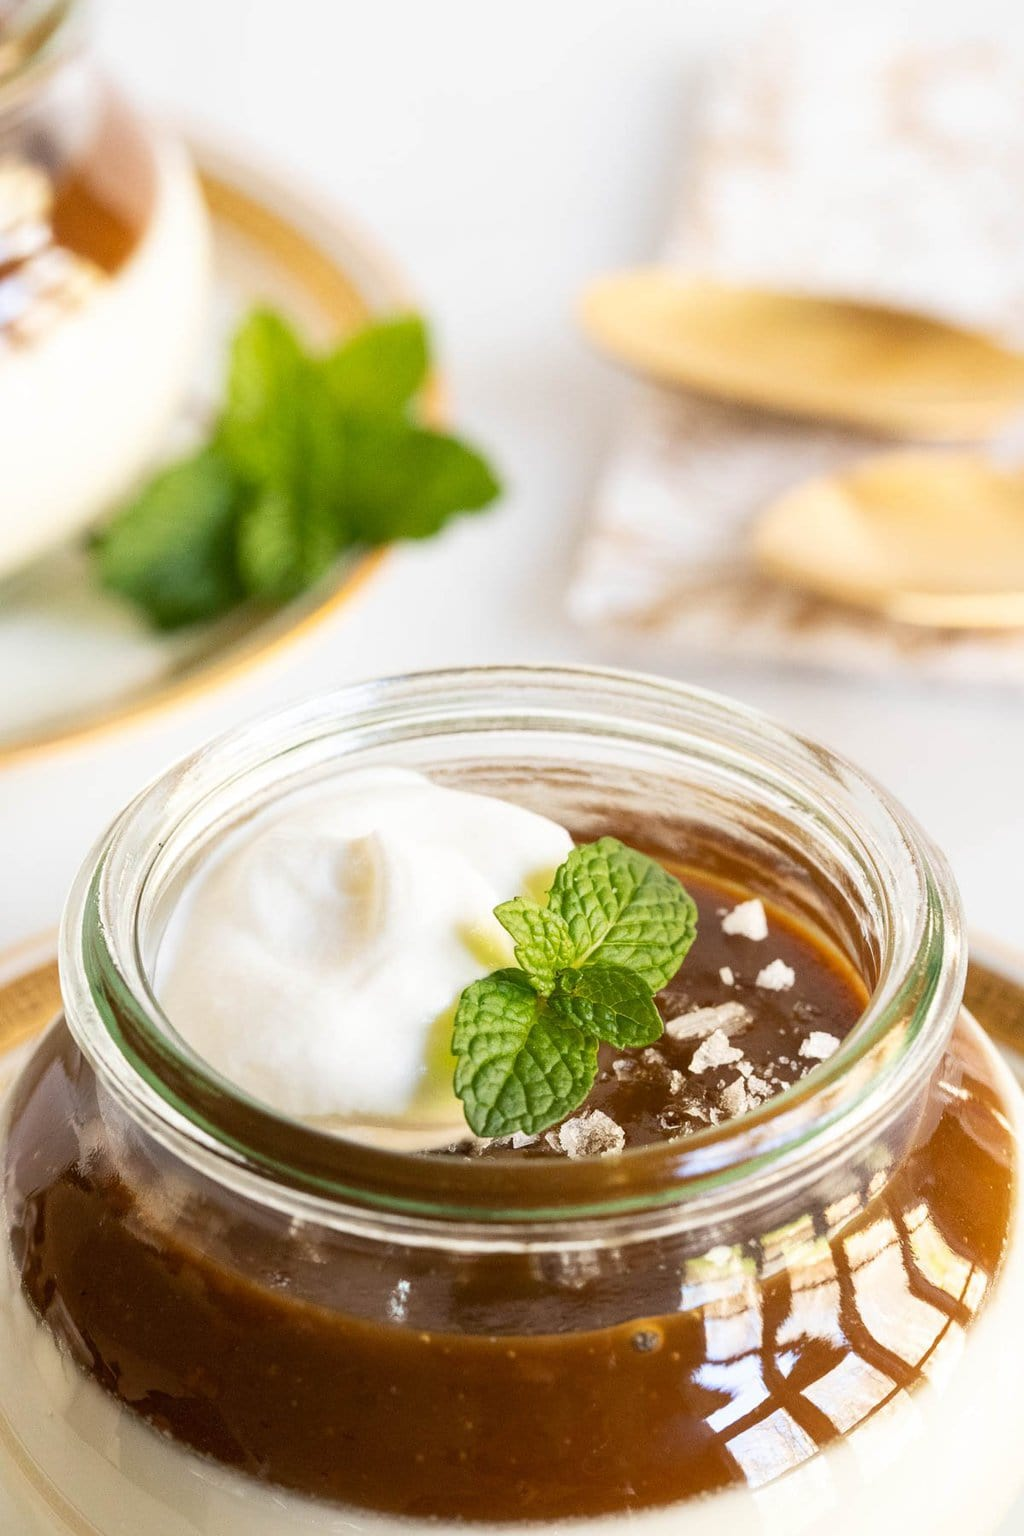 Vertical closeup photo of the top of a jar filled with Salted Butterscotch Panna Cotta and garnished with whipped cream and a sprig of fresh mint.